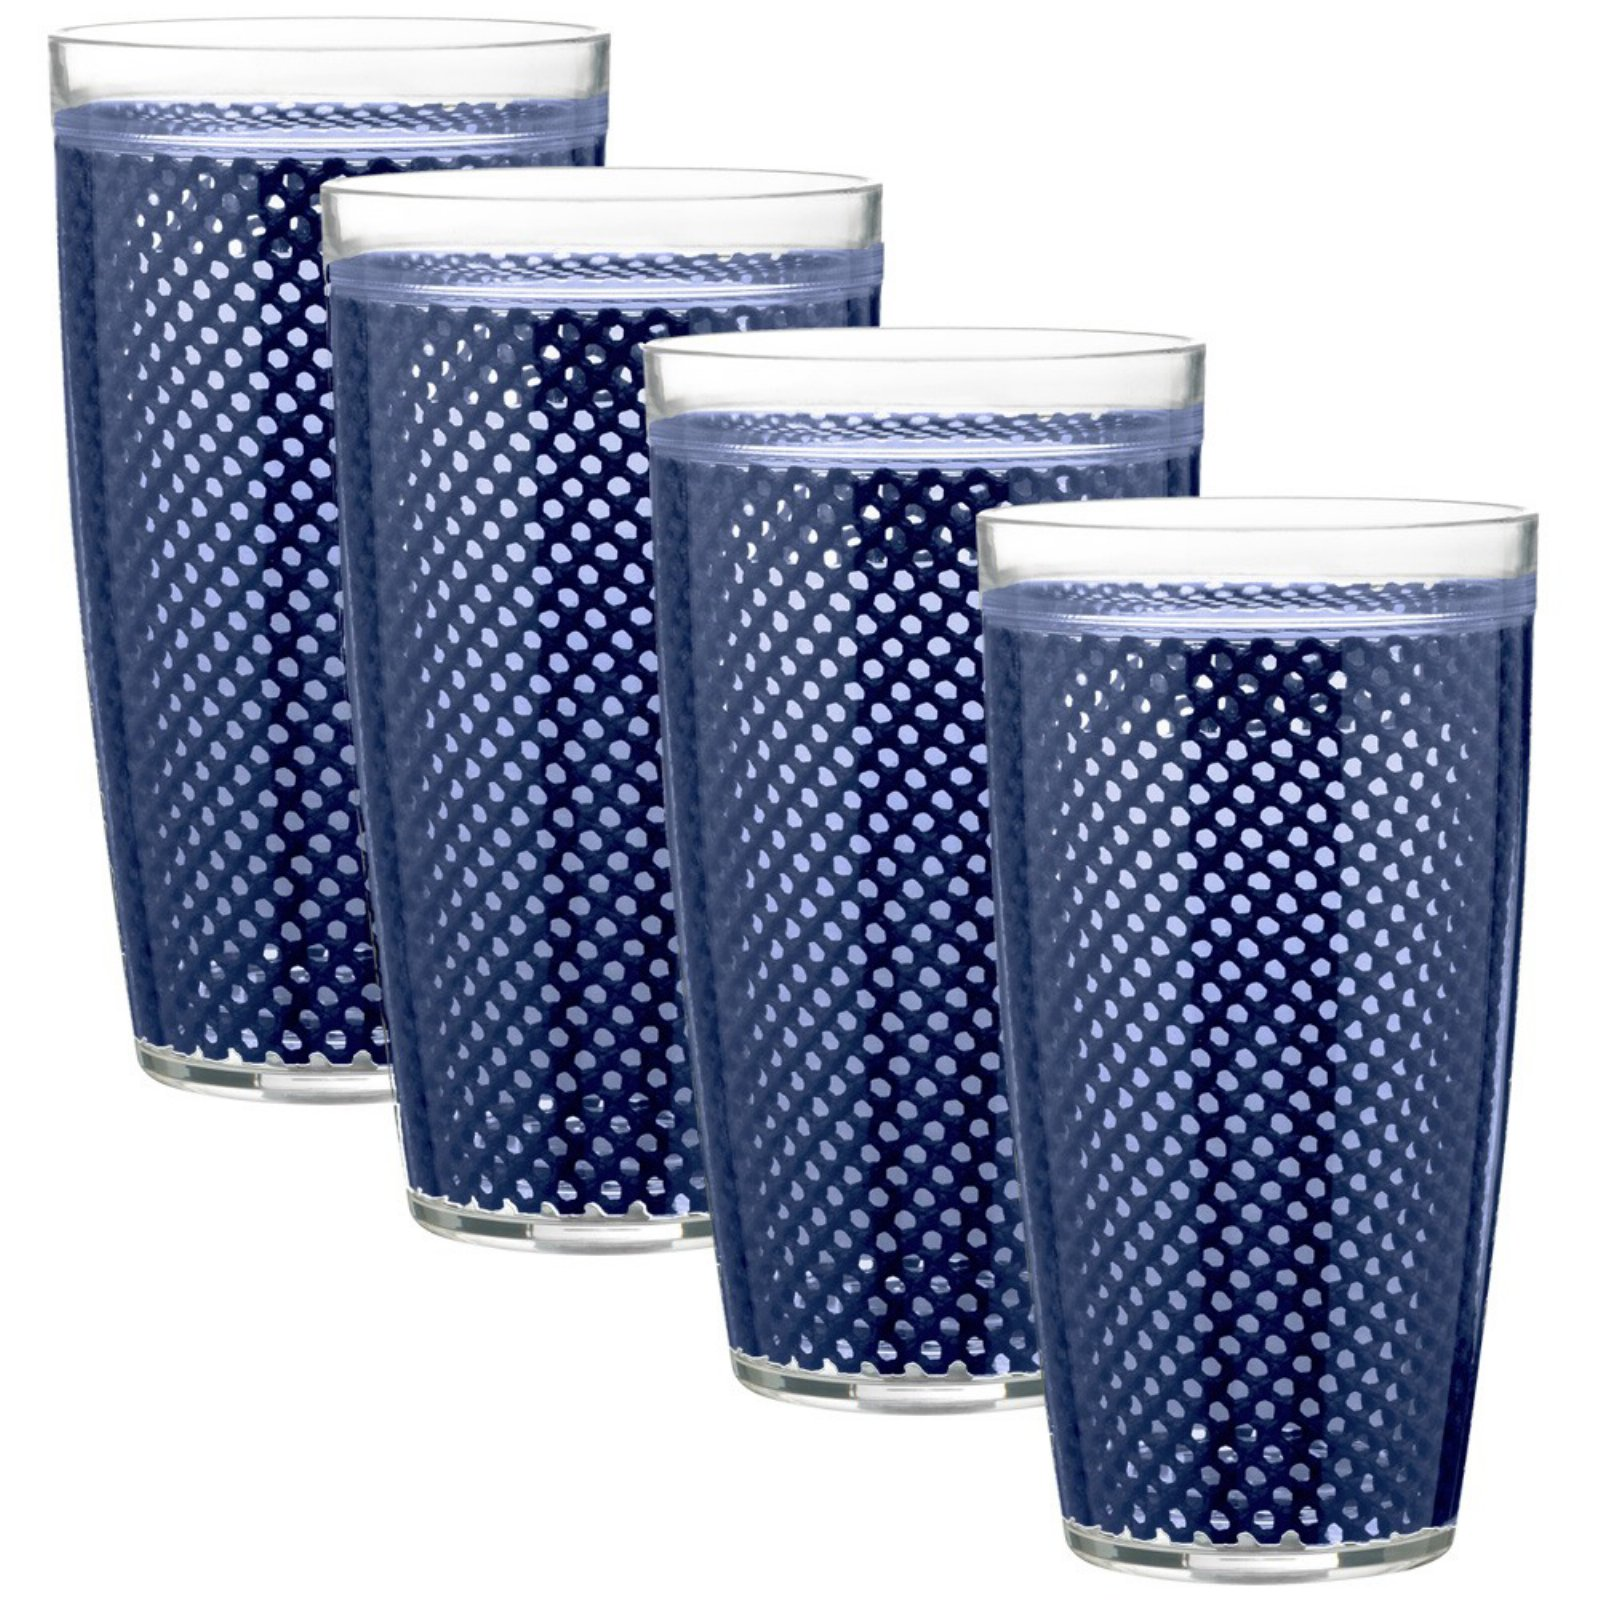 Kraftware Fishnet 24 oz. Doublewall Drinkware - Set of 4